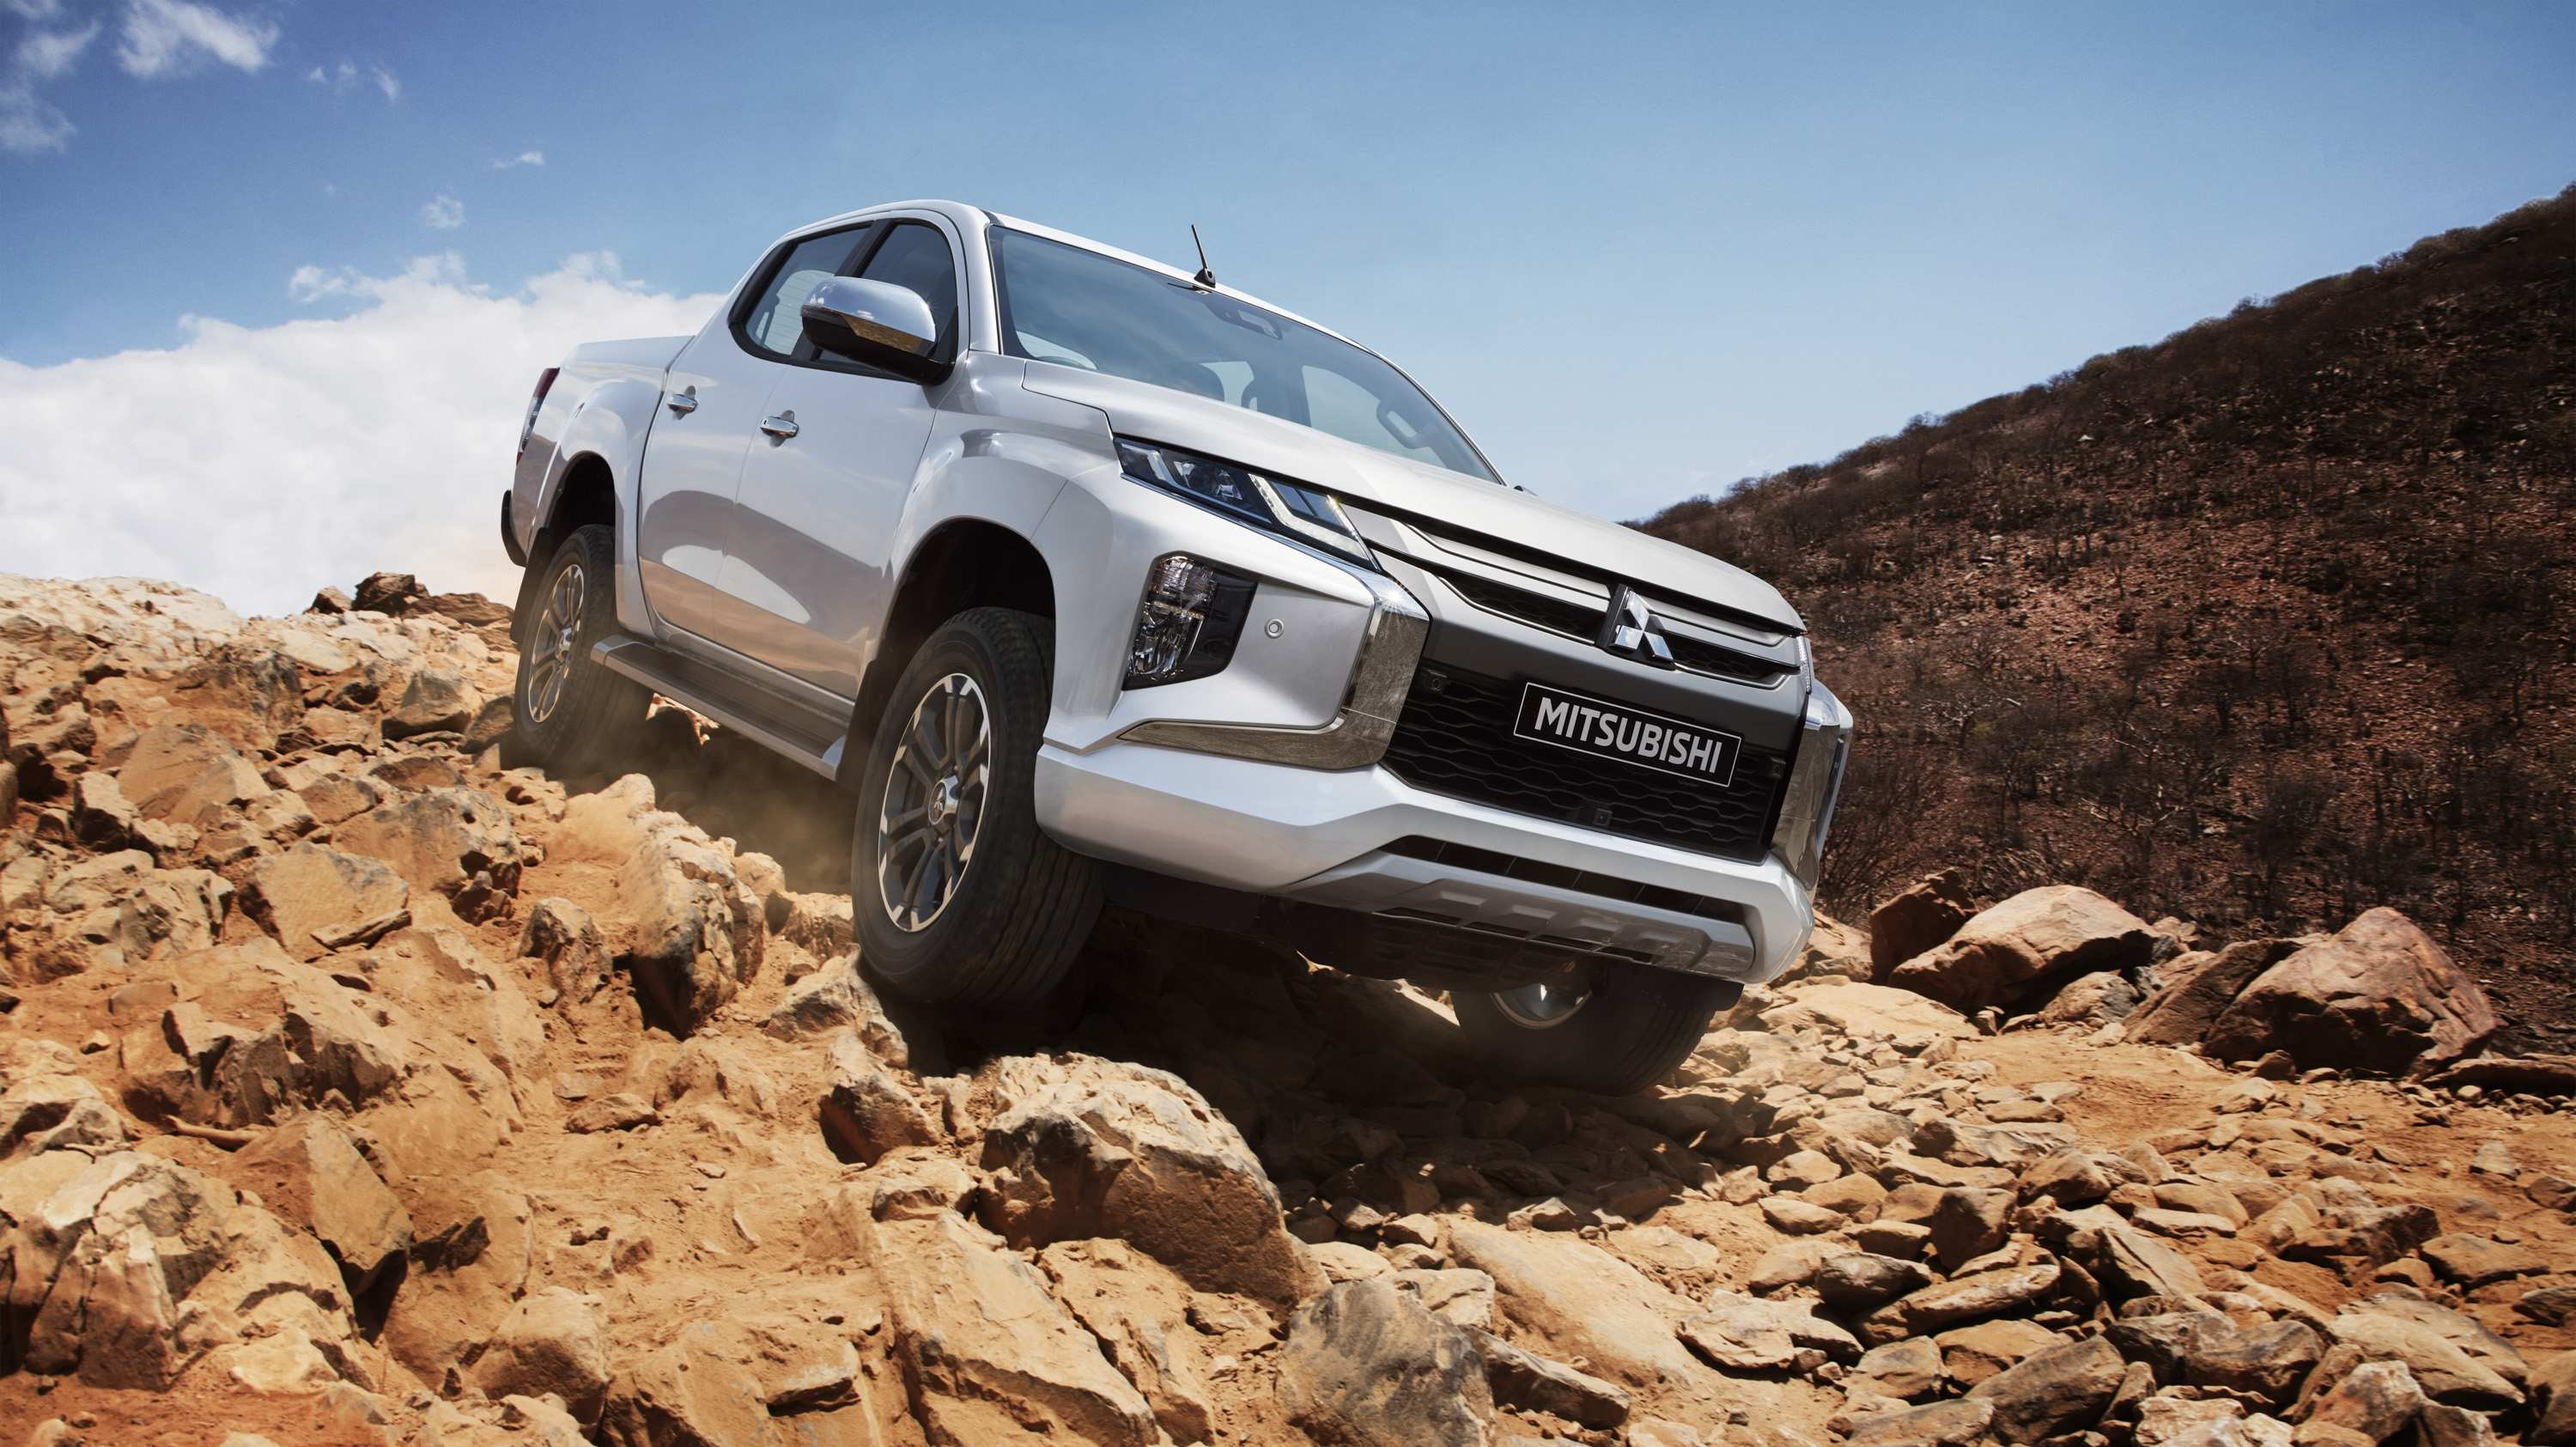 59 The Mitsubishi Sportero 2019 Engine with Mitsubishi Sportero 2019